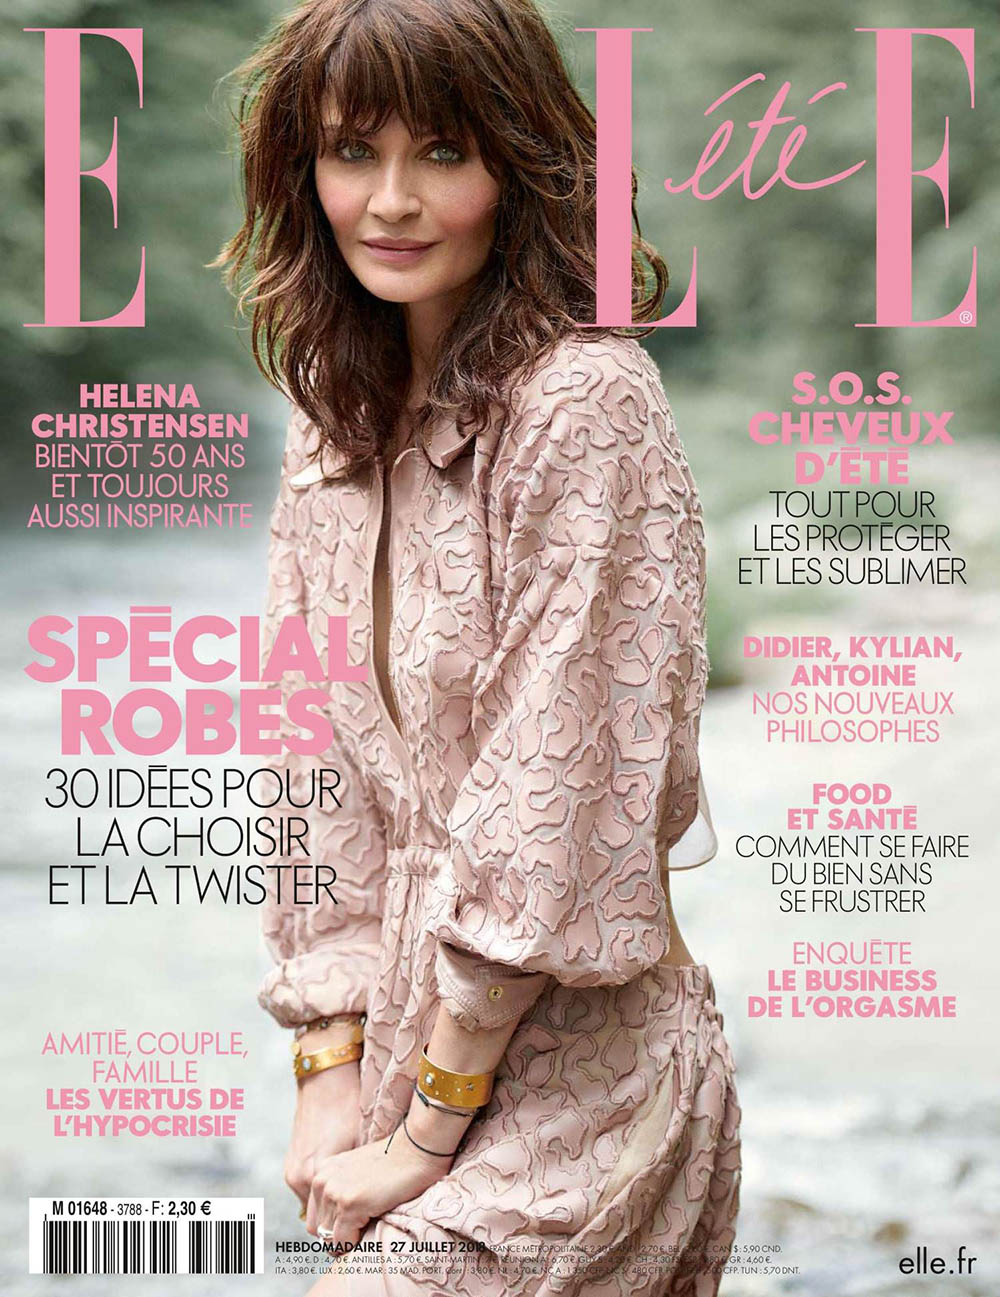 Helena Christensen covers Elle France July 27th, 2018 by Blair Getz Mezibov